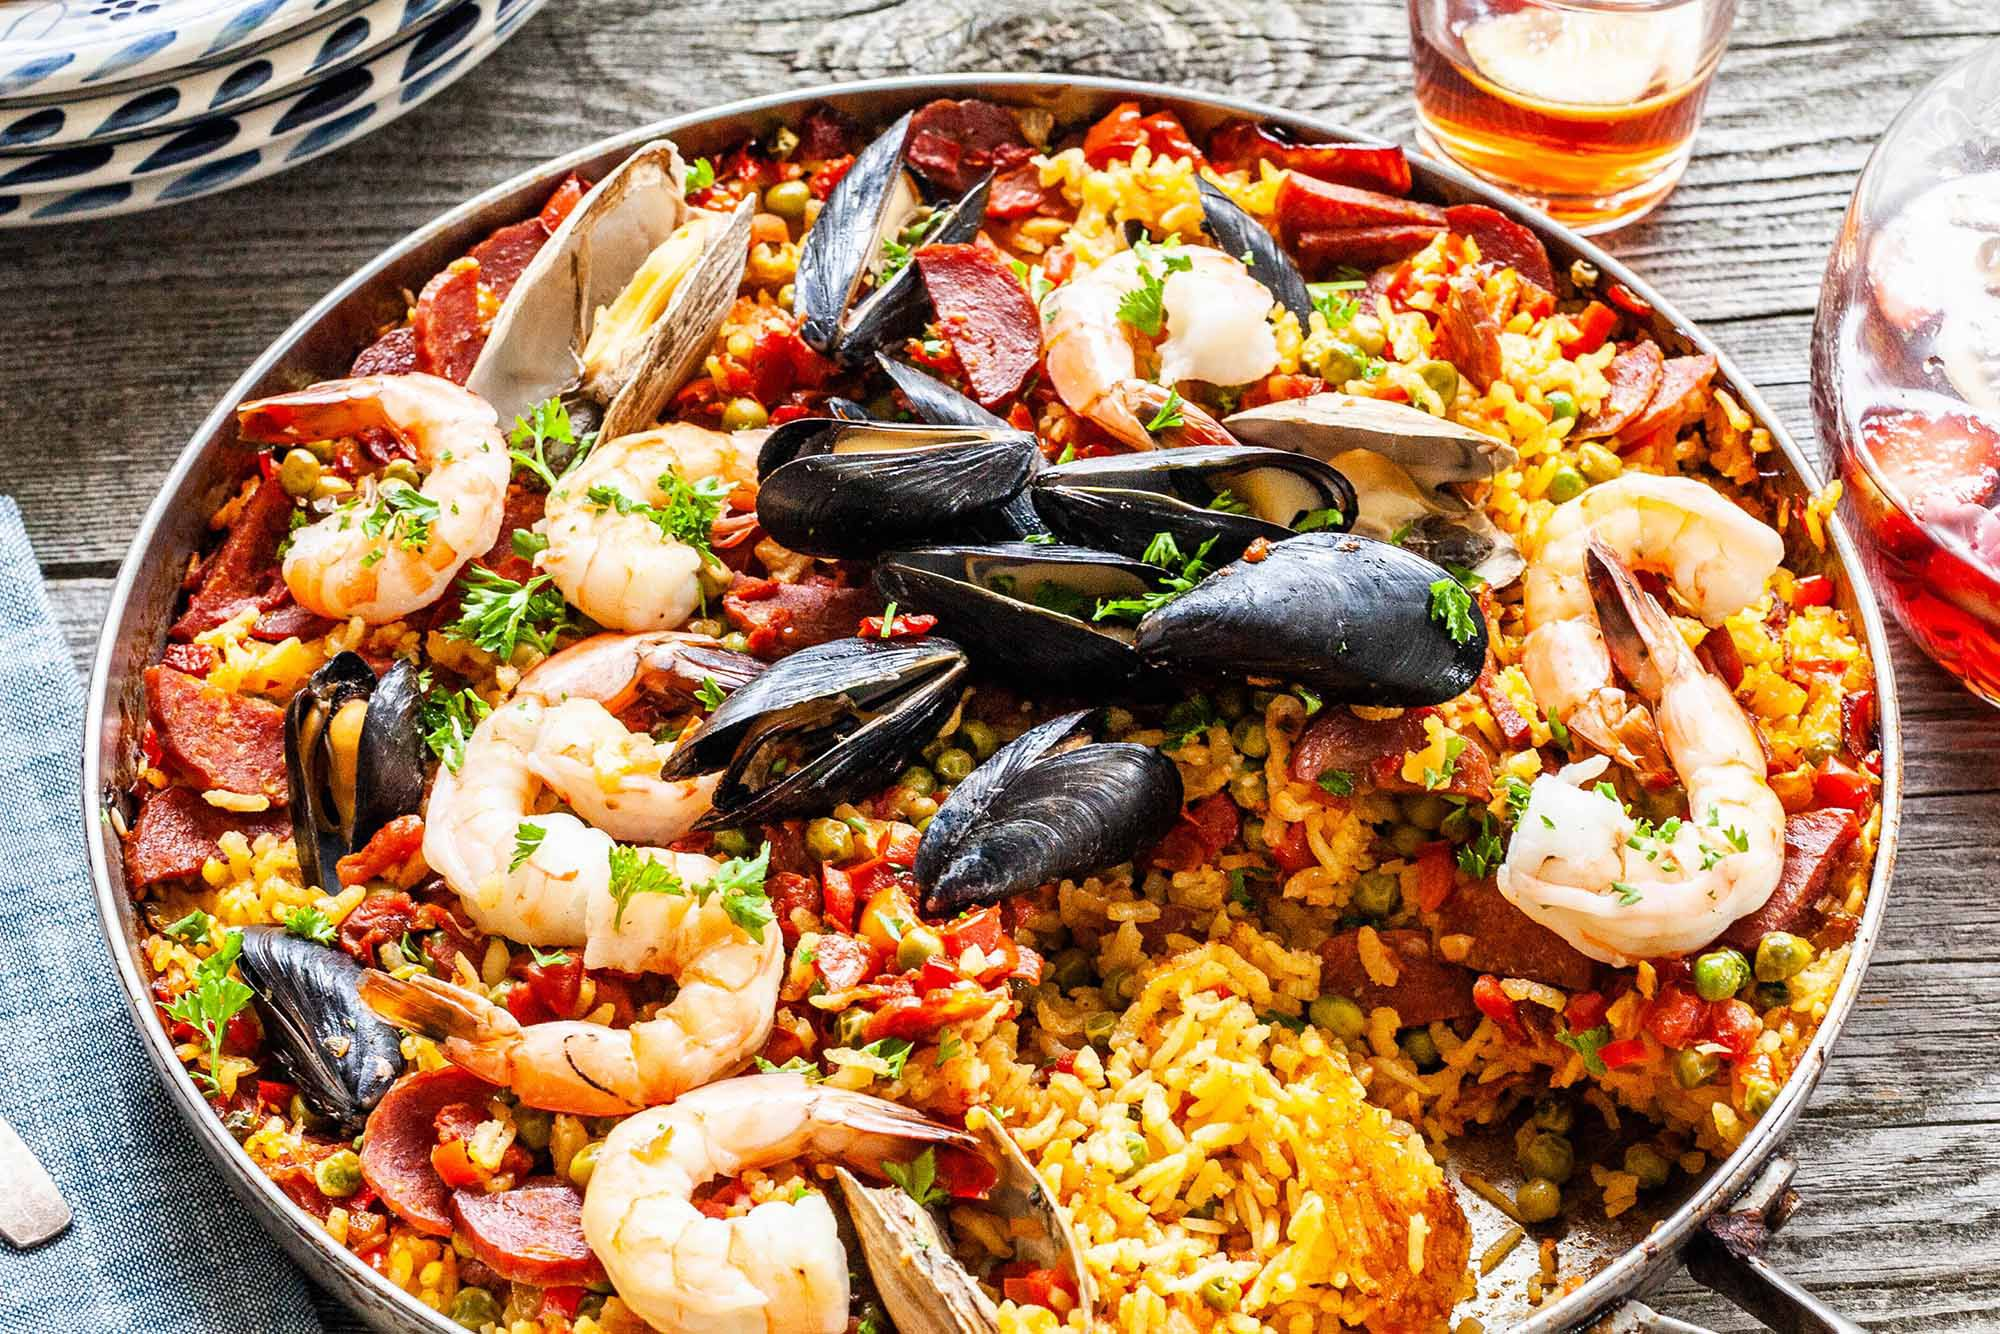 Why Is Paella So Popular?